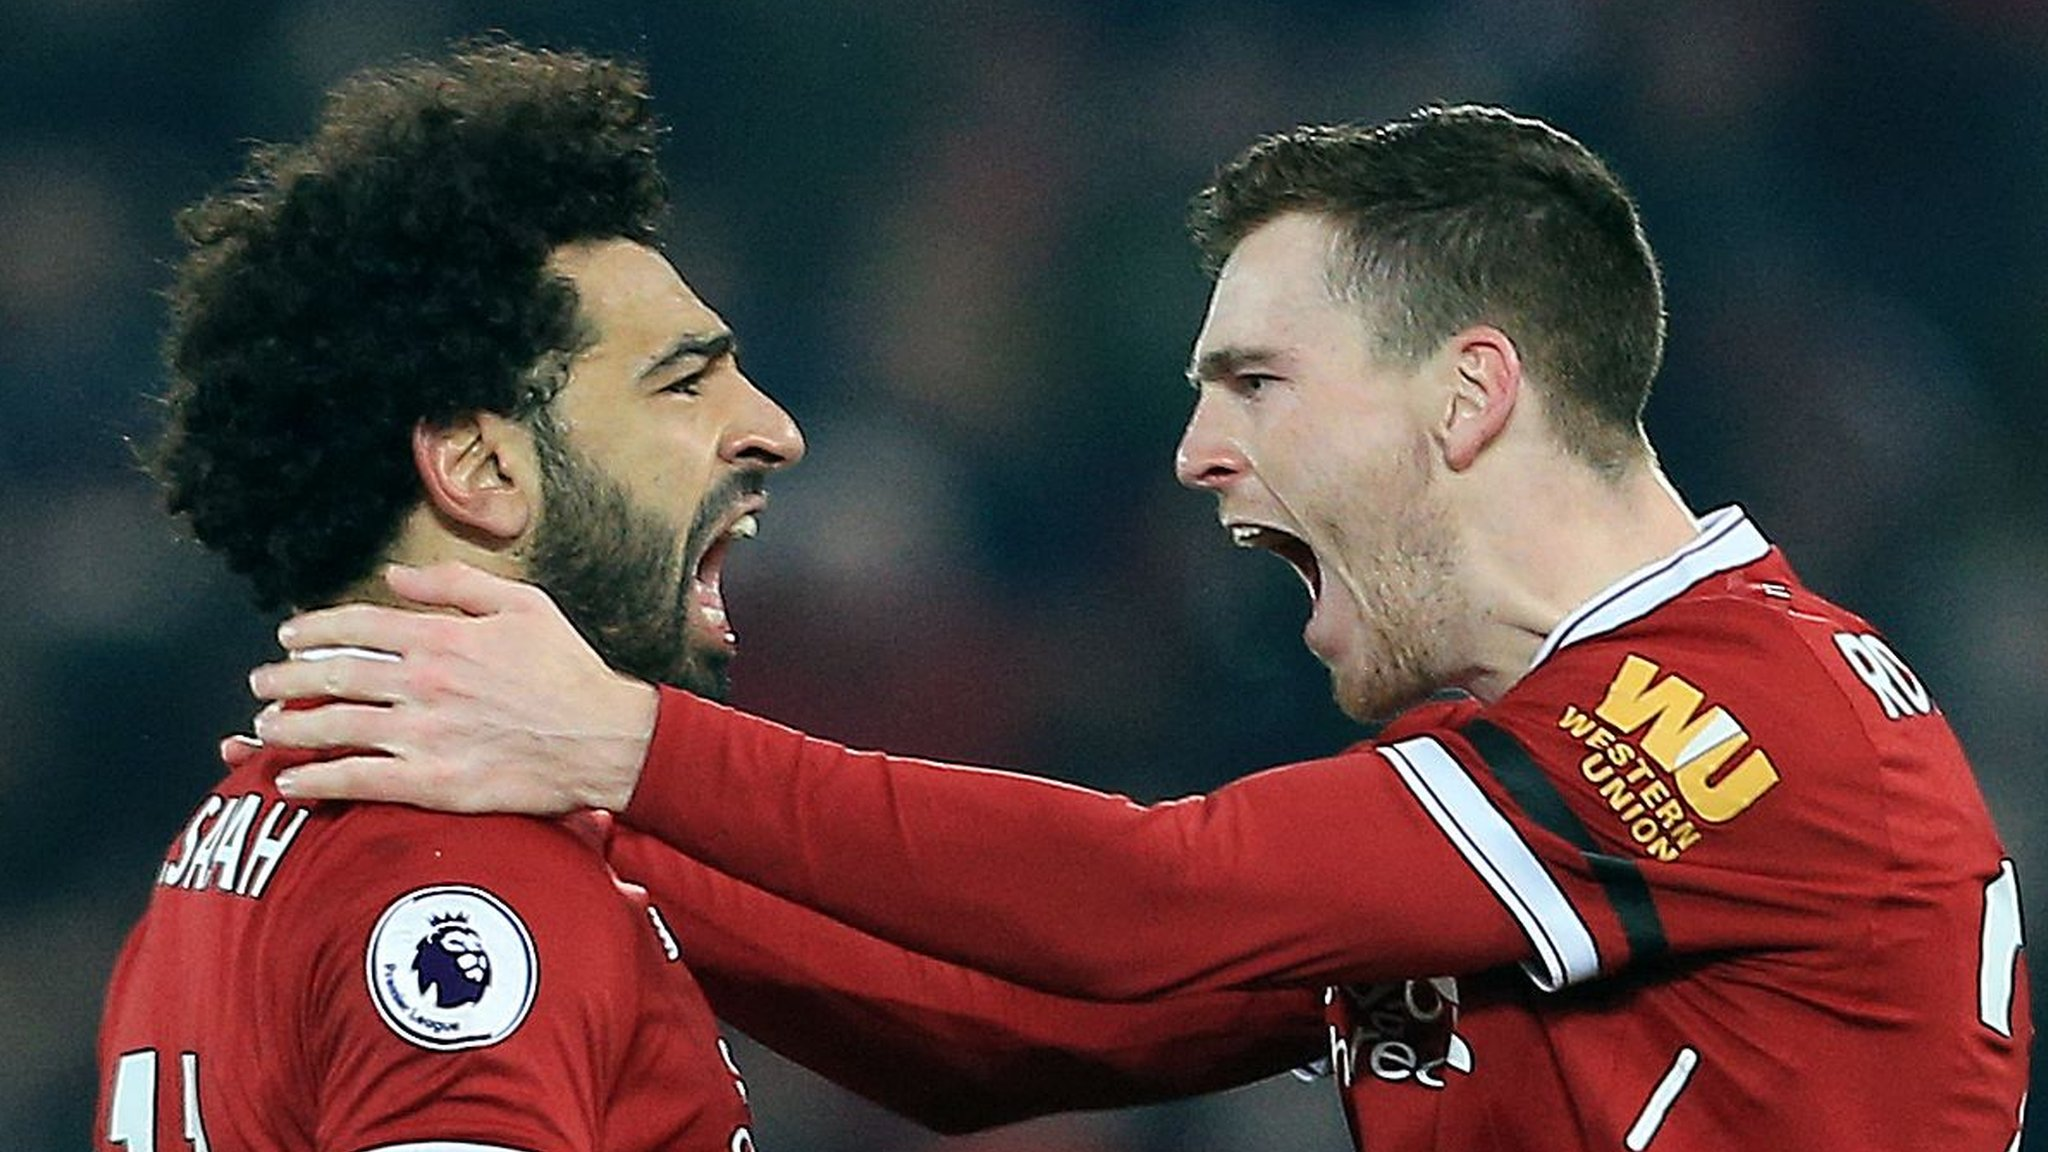 Analysis: Energy, belief and fantastic finishing - how Liverpool beat Man City